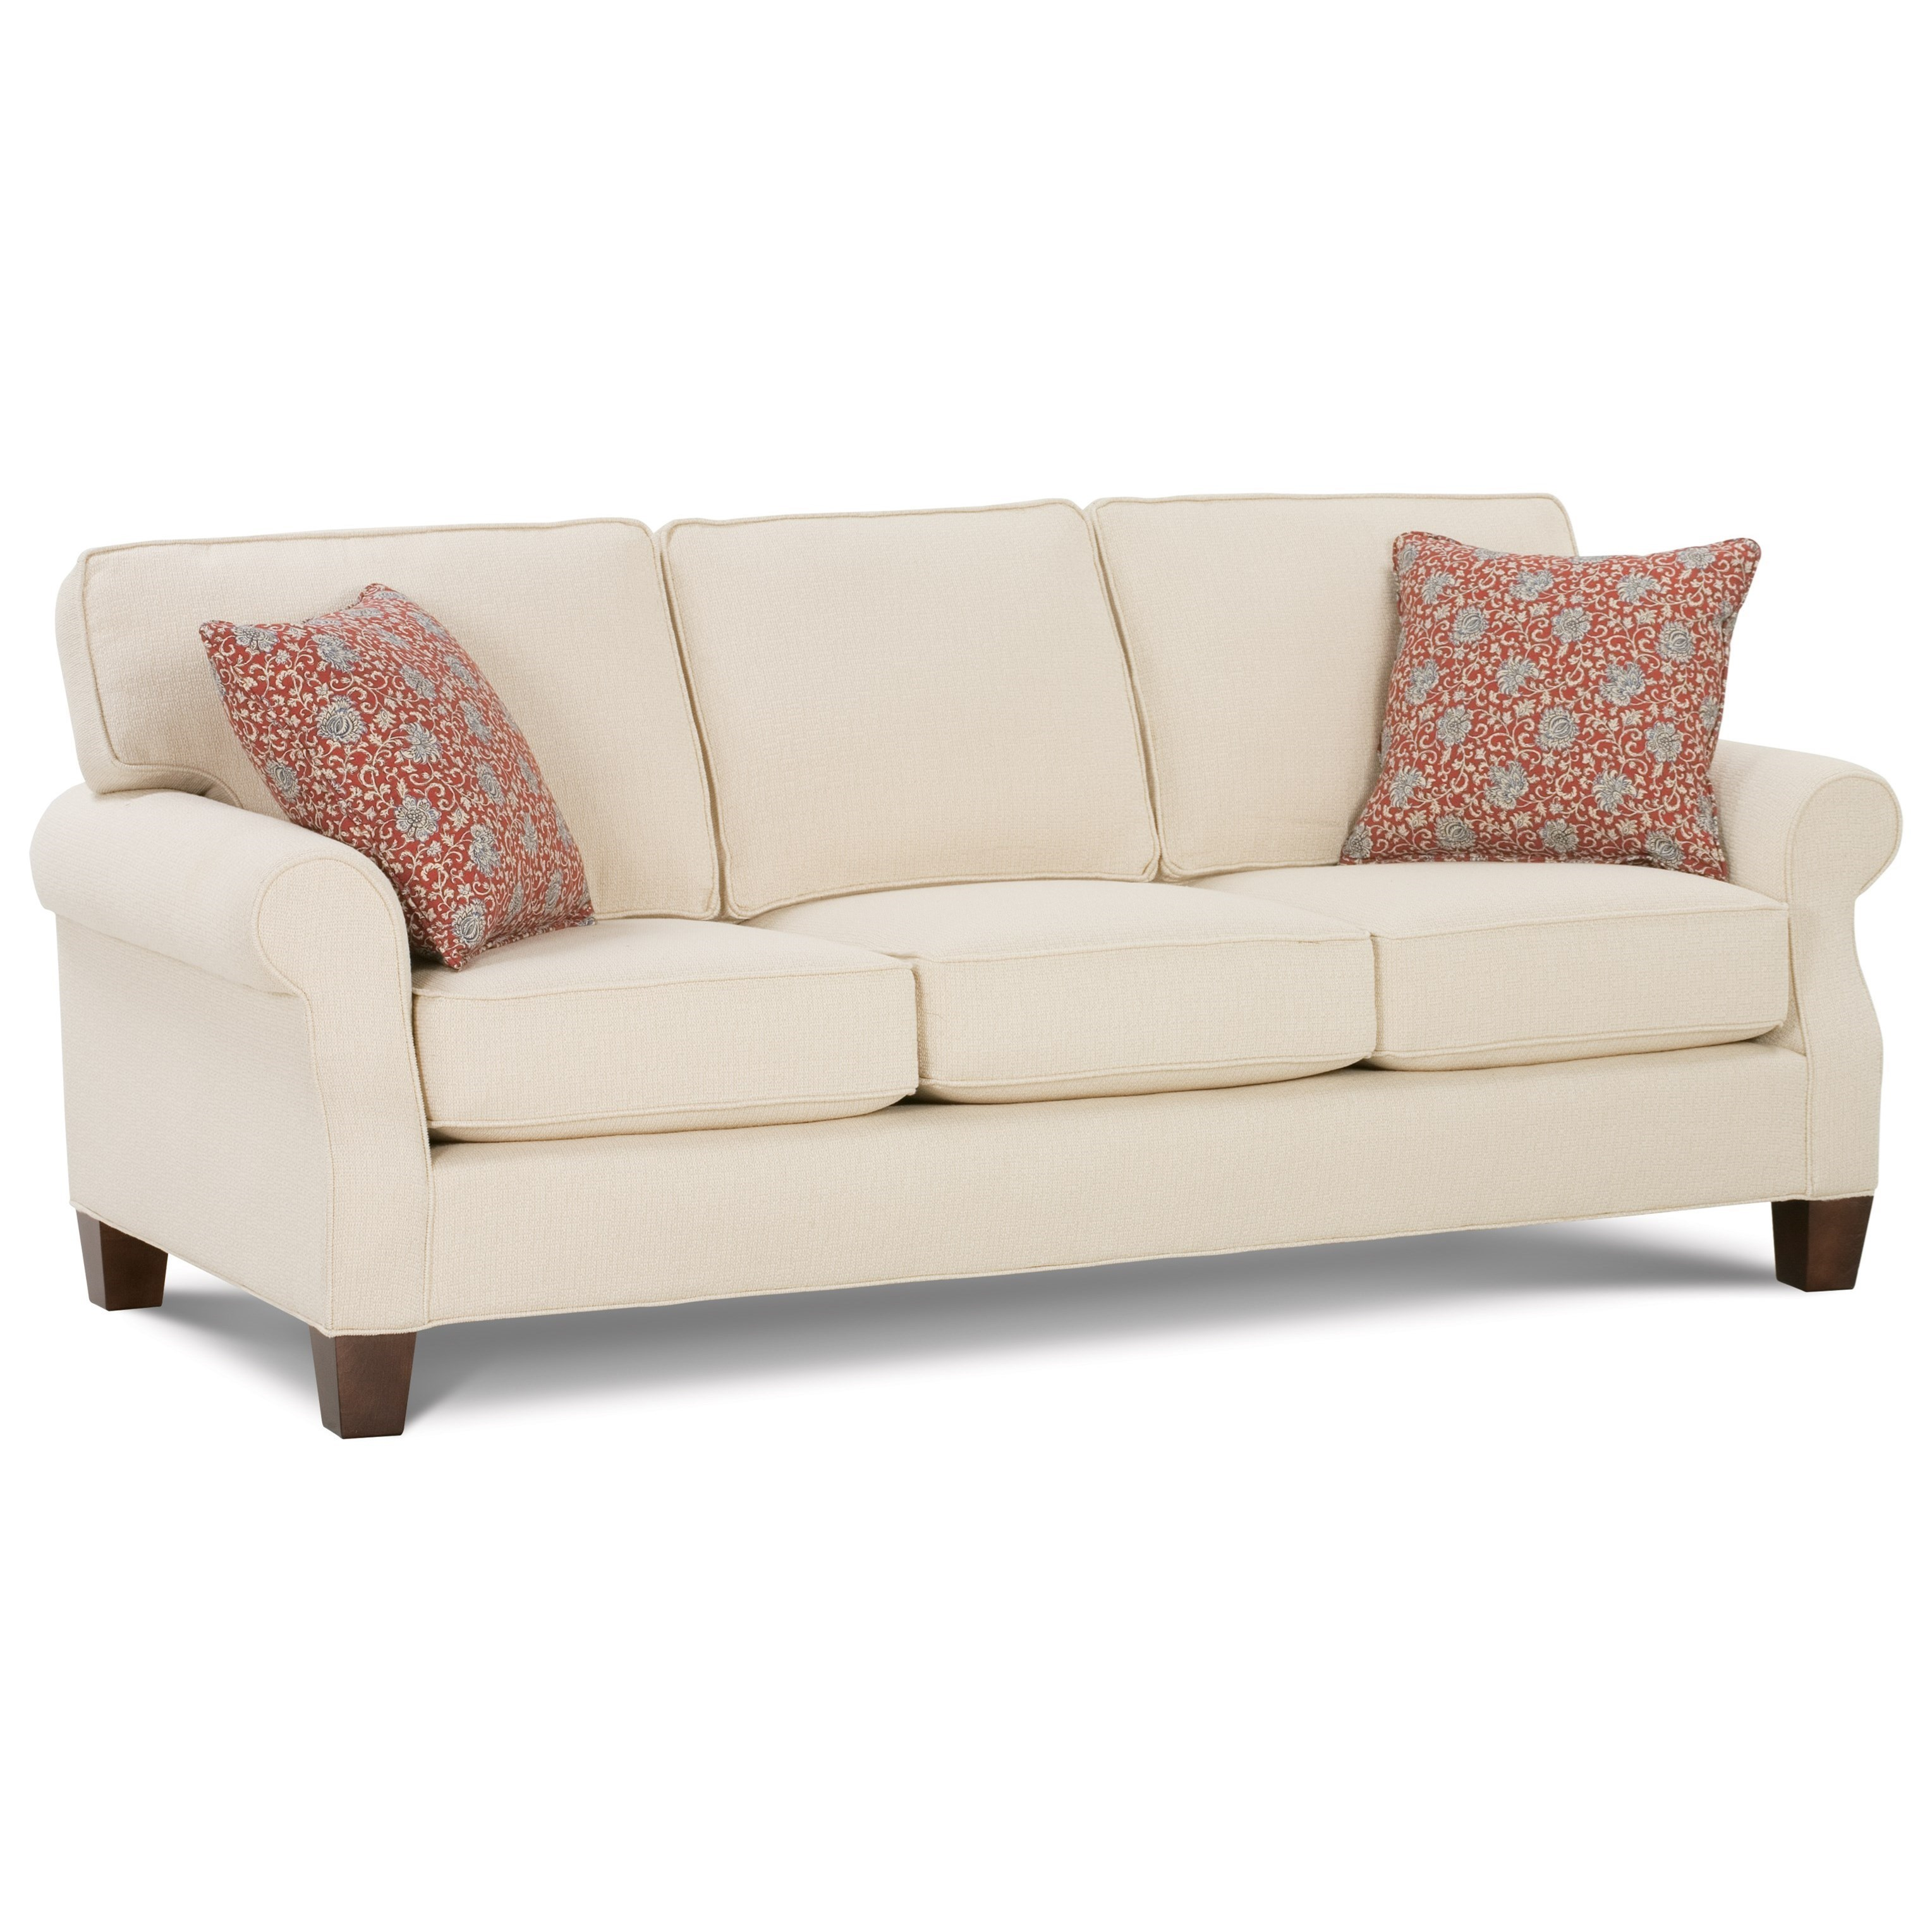 Nantucket 2 seat slipcover queen sleeper sofa rowe furniture rowe - Rowe Kimball Sofa With Rolled Arms U0026 Exposed Wood Legs Mitchell 2seat